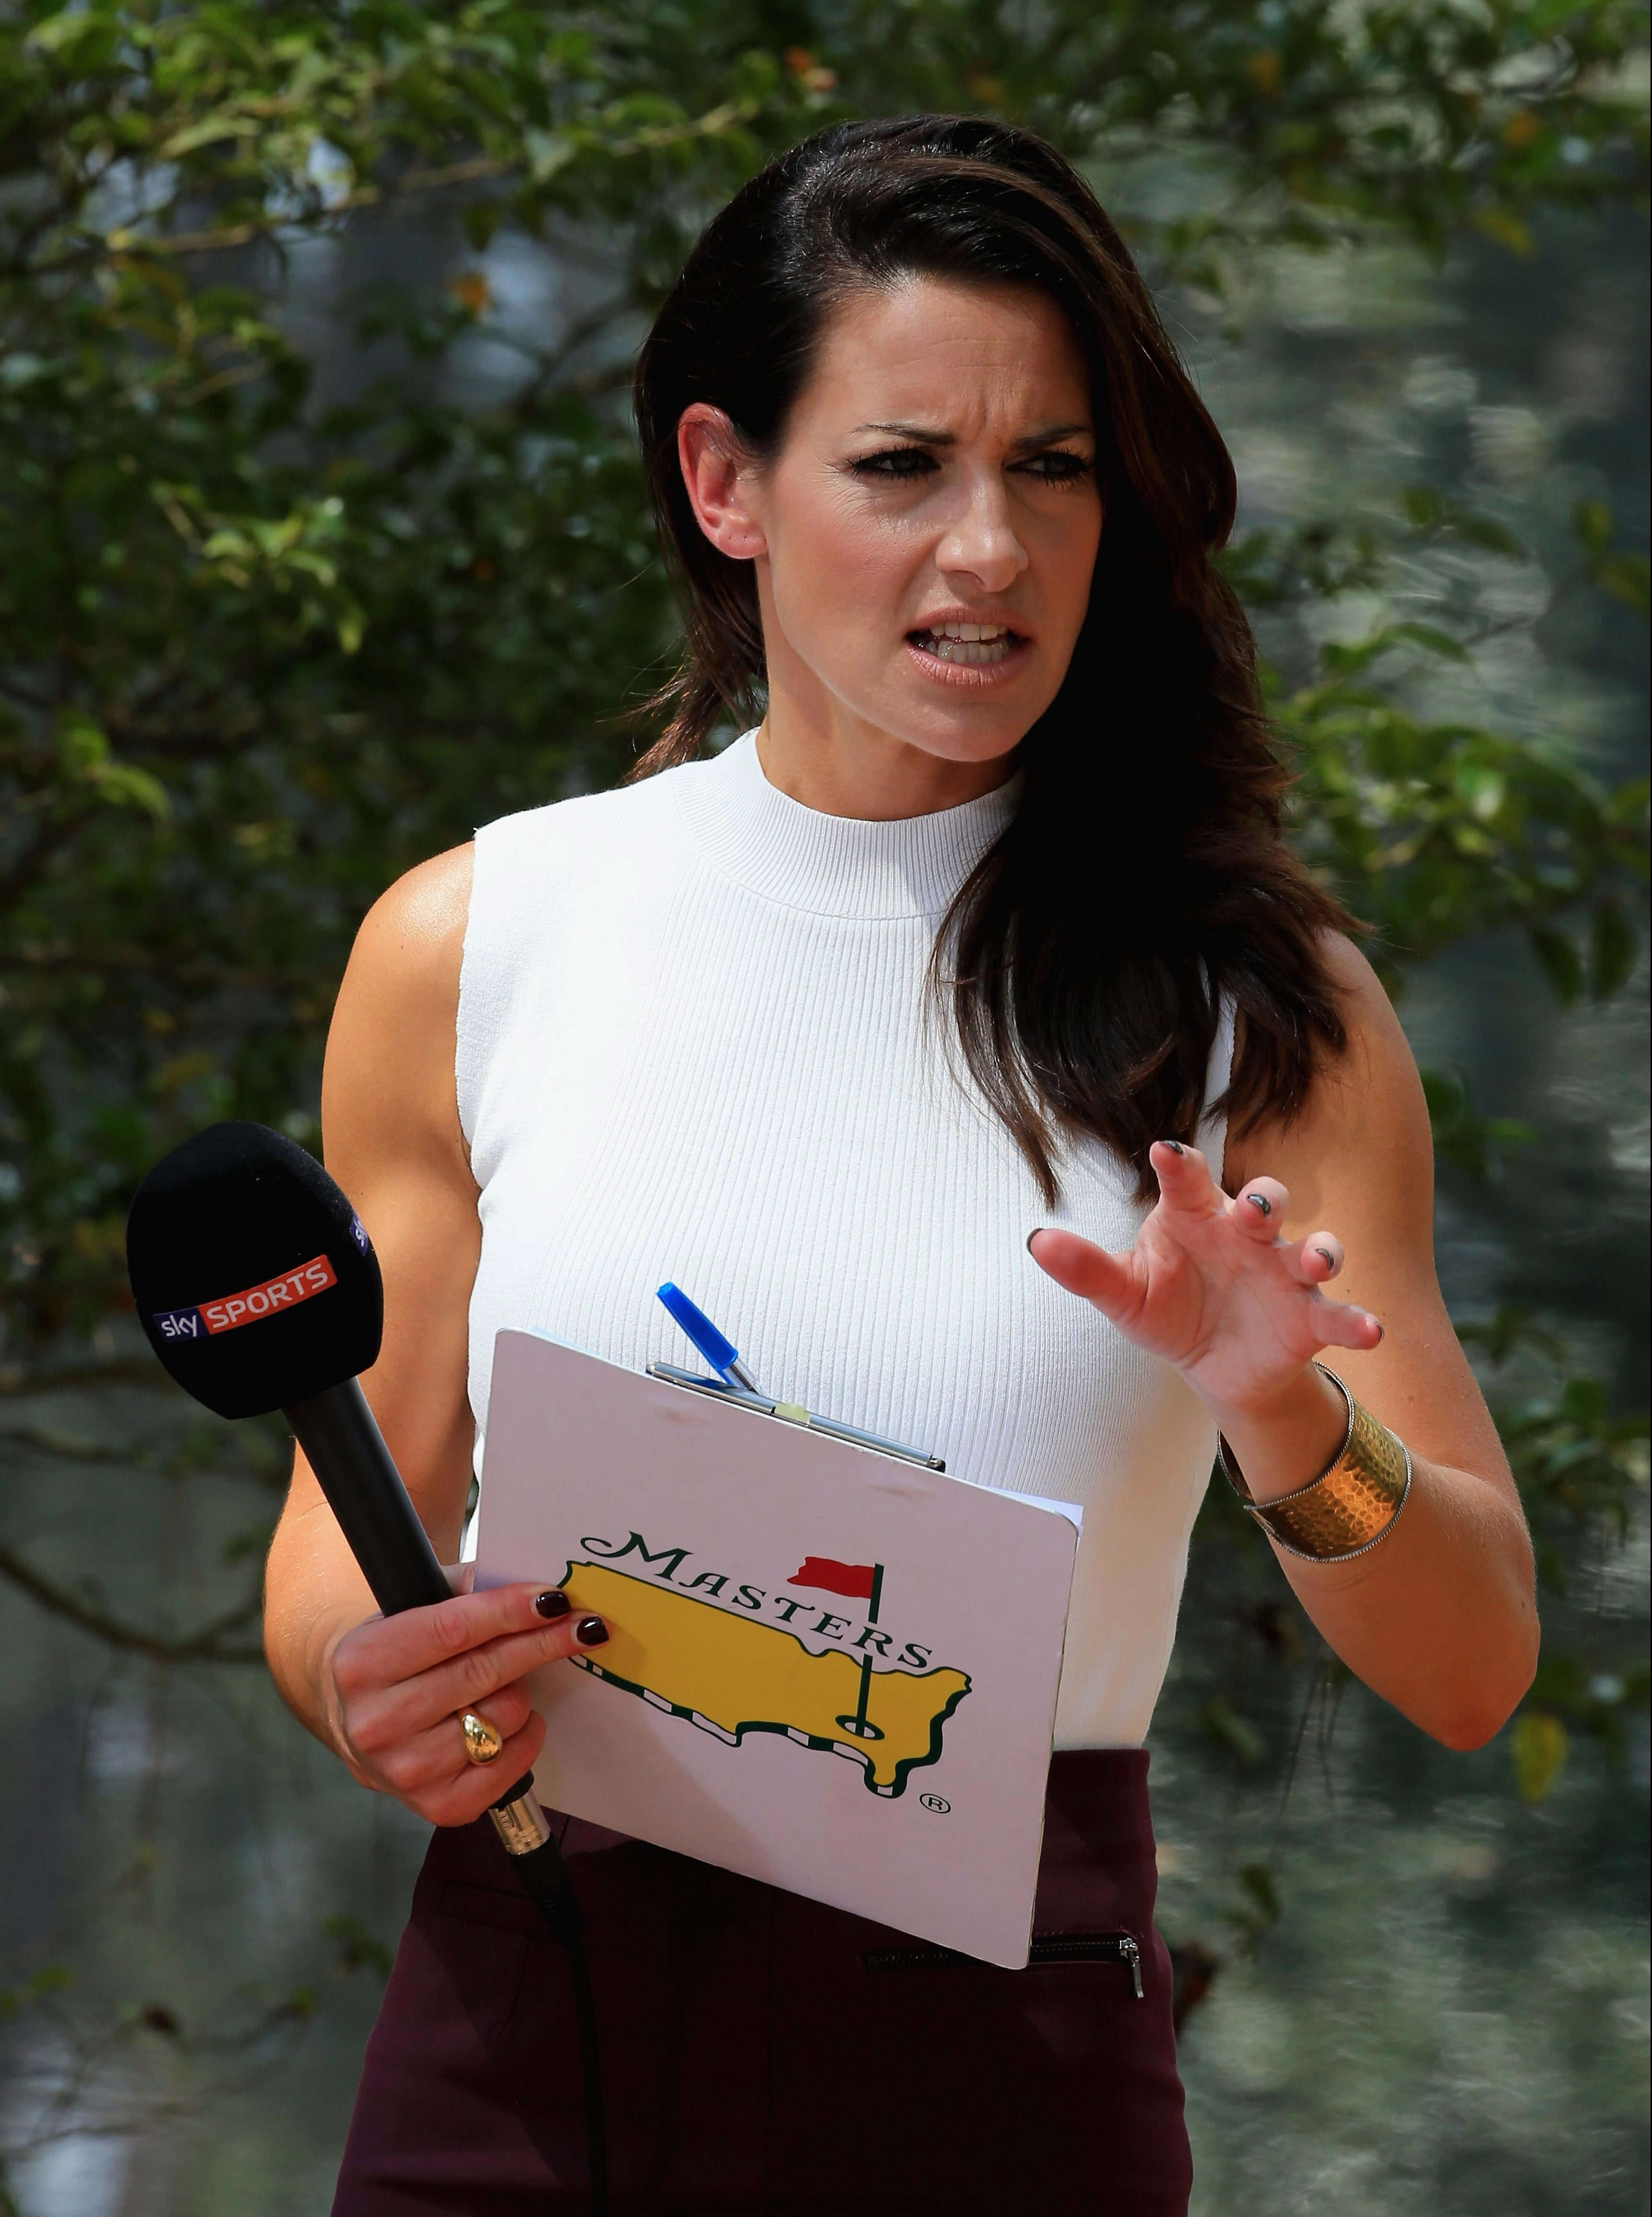 Kirsty Gallacher has been dropped from Skys Masters coverage for the second year in a row